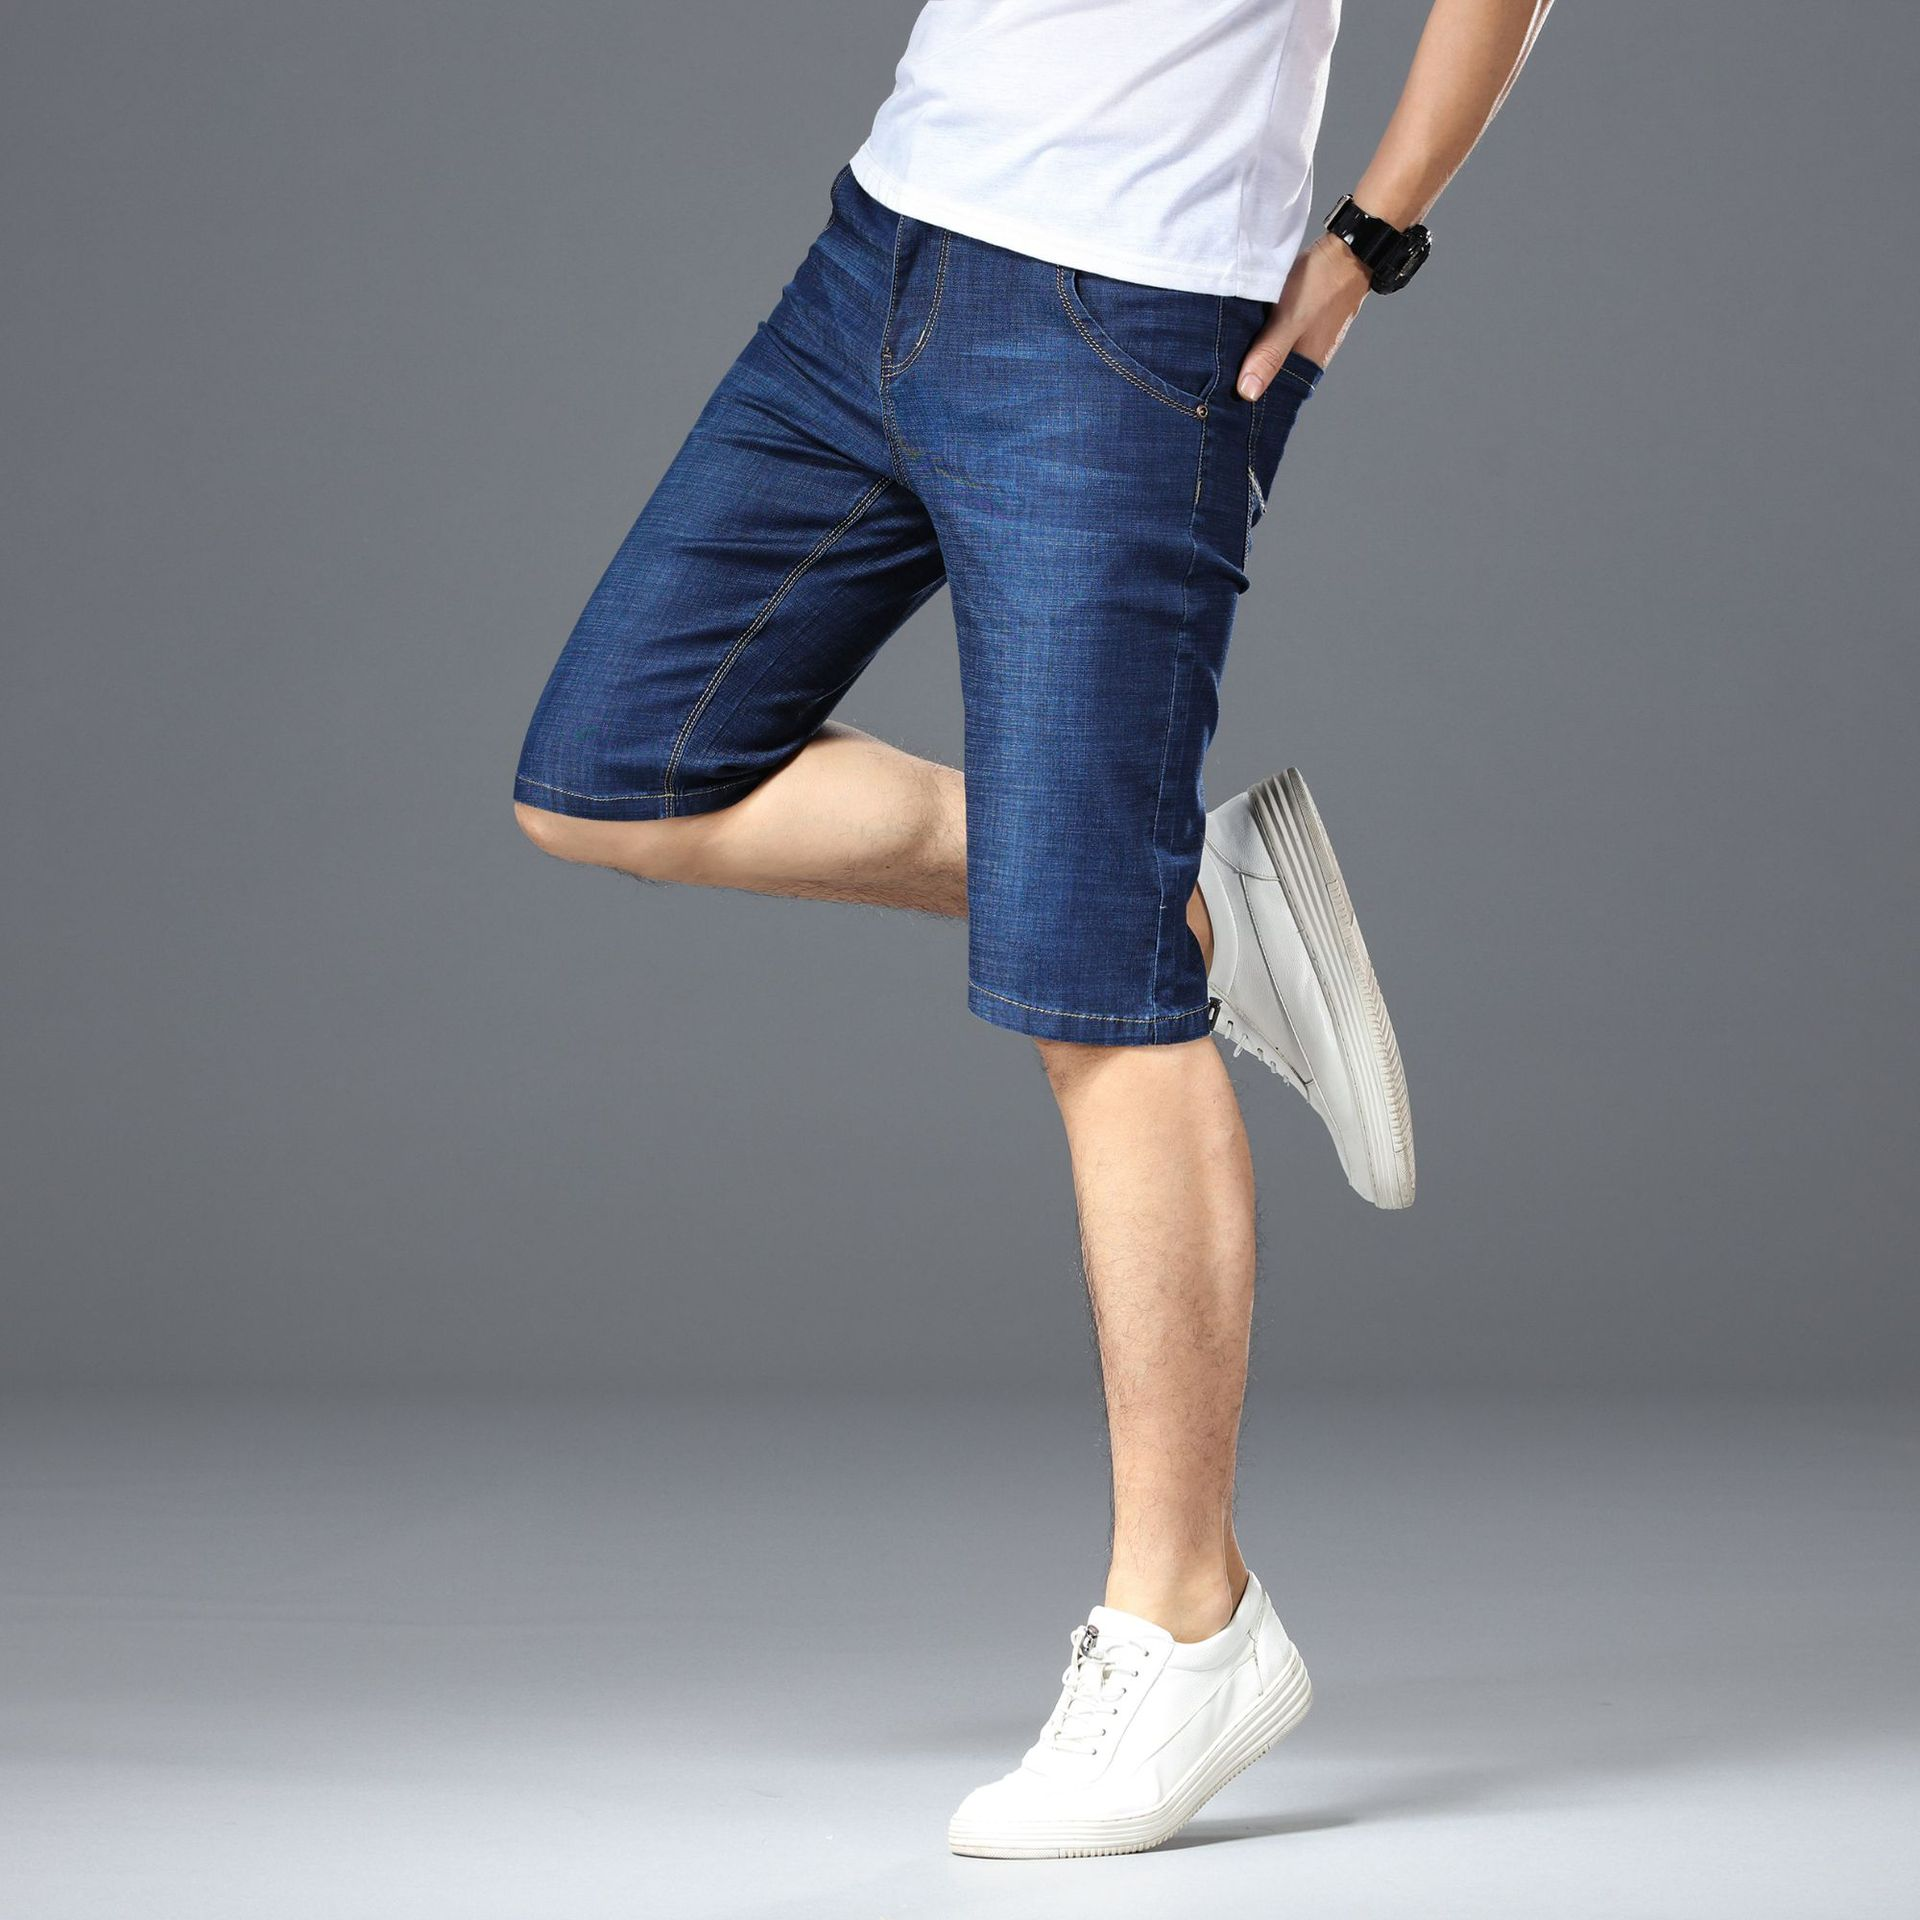 Korean-style Summer New Products Fashion Jeans Men's 2019 Trend Loose-Fit Youth Men Short Shorts